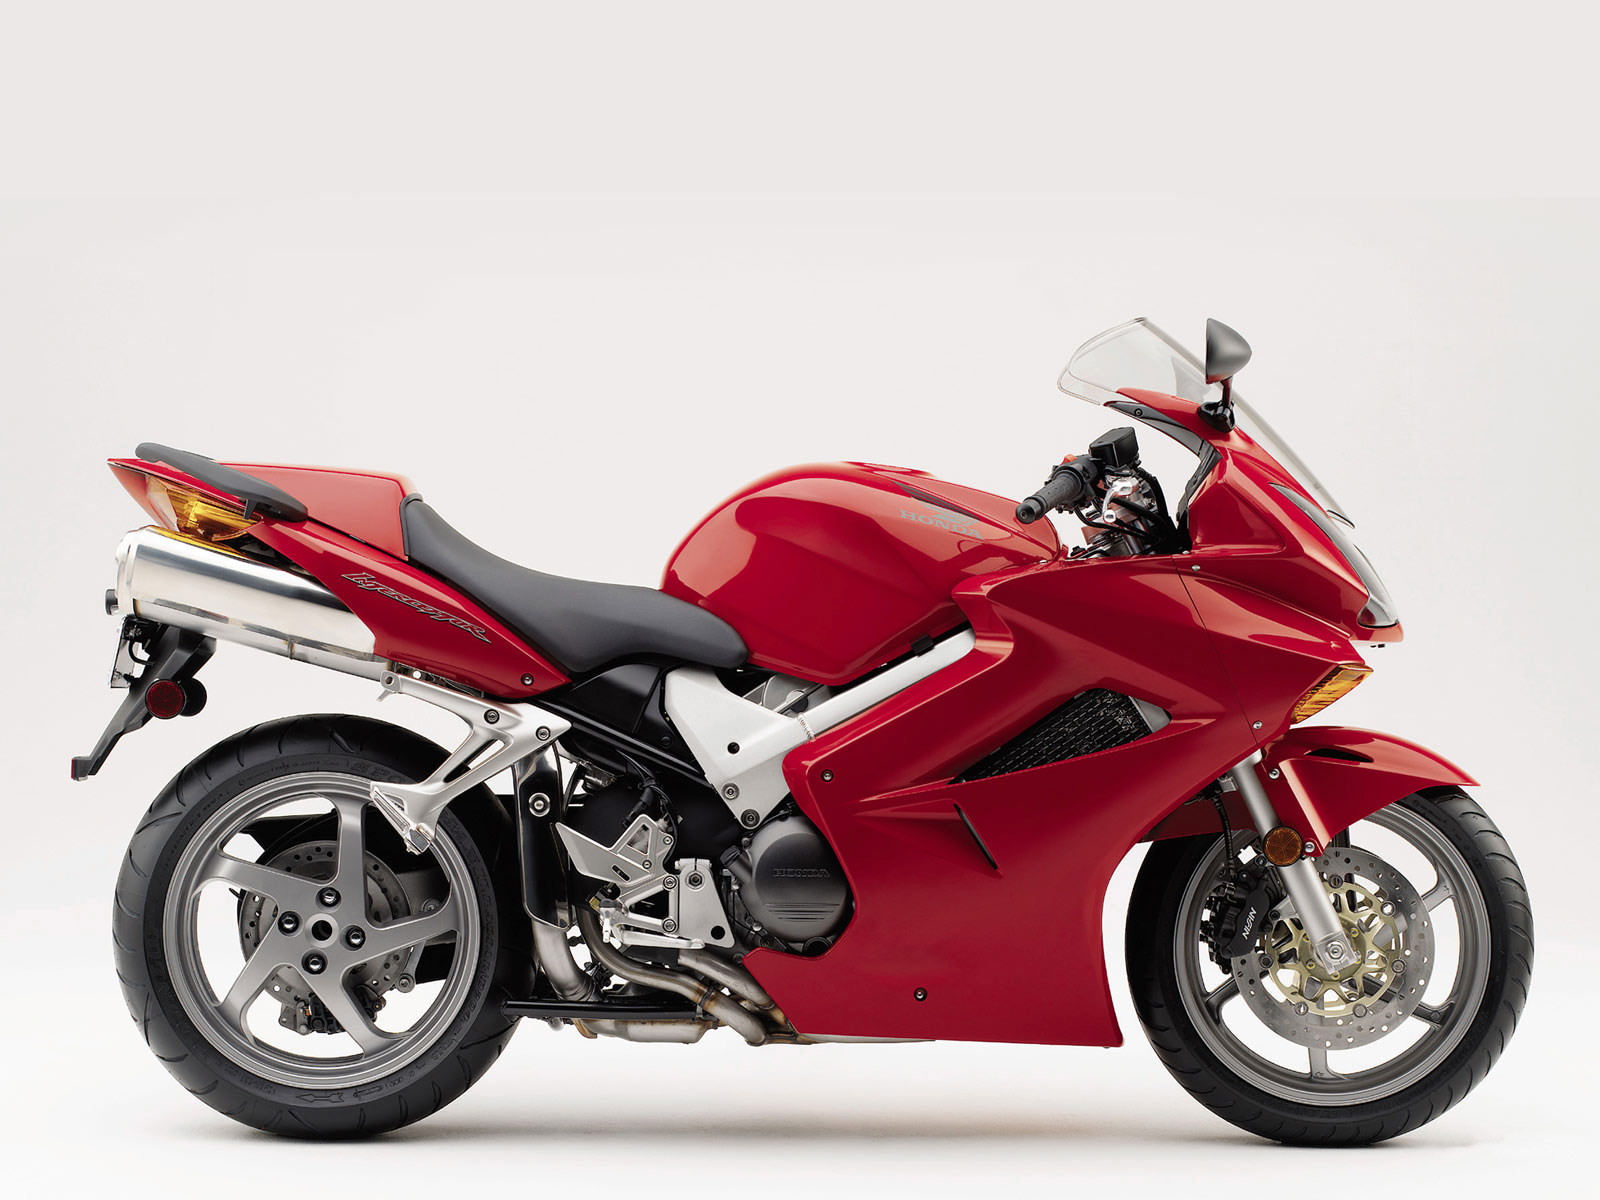 2004 Honda St1300 Motorcycle Wallpaper Accident Lawyers Info